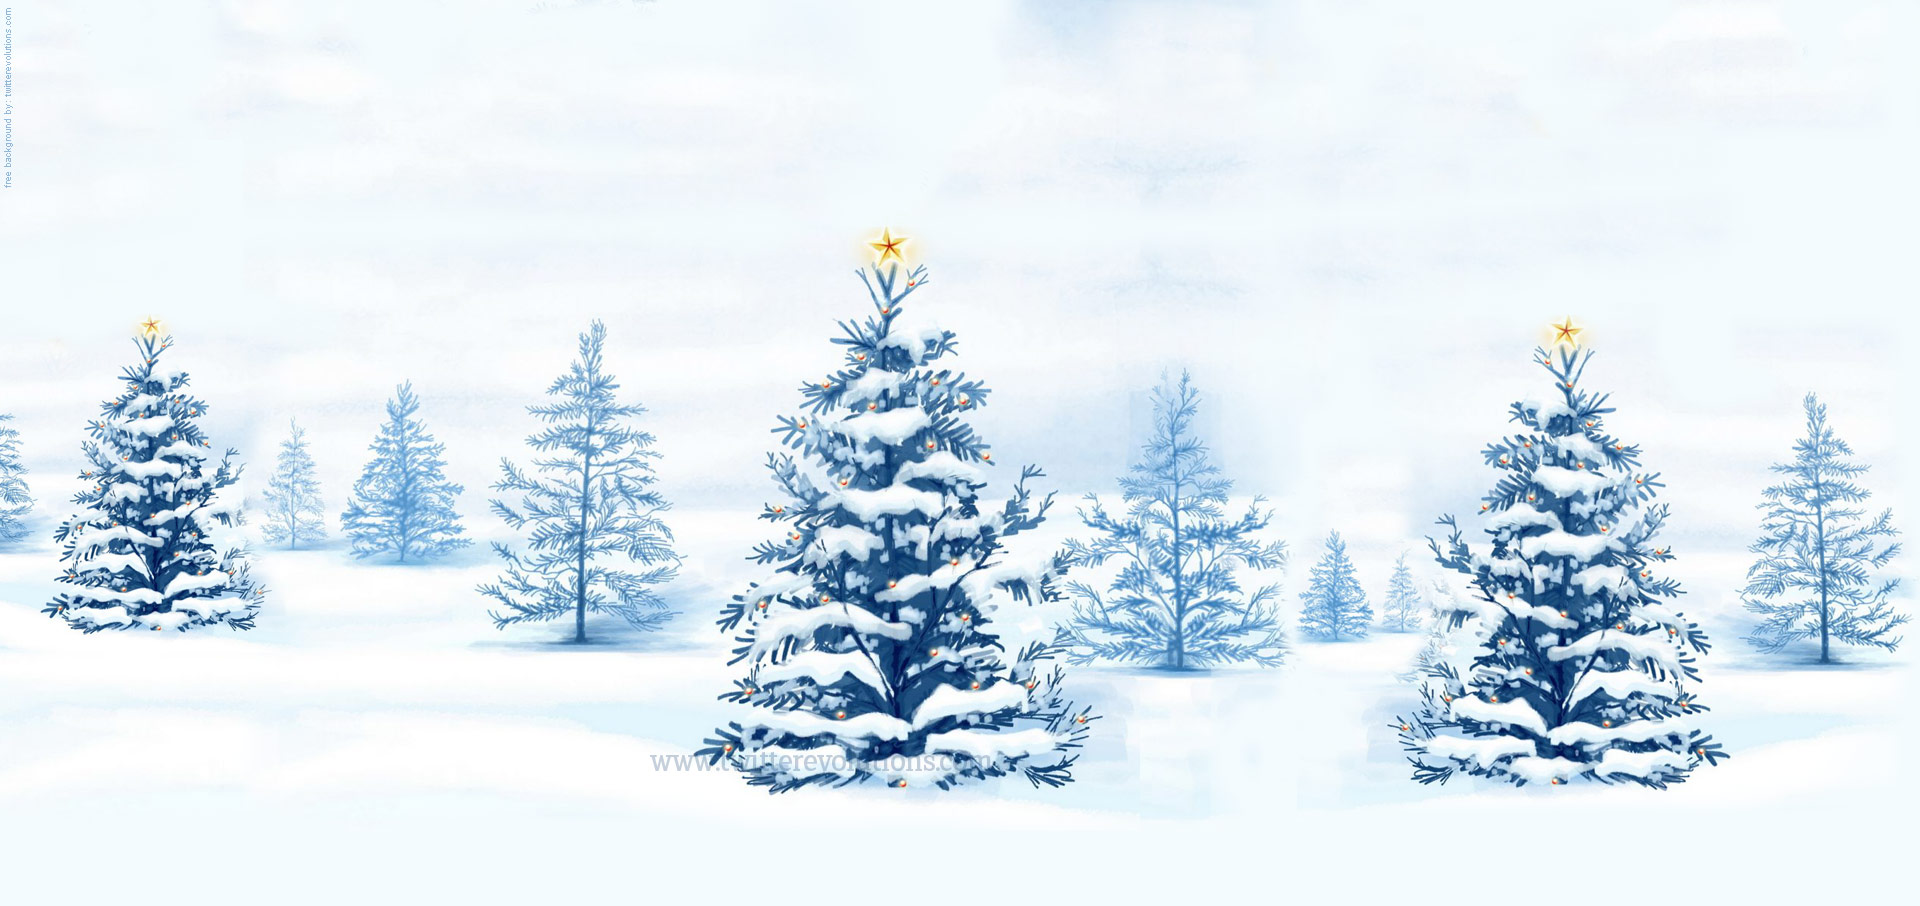 Christmas Snowy Background Sf Wallpaper